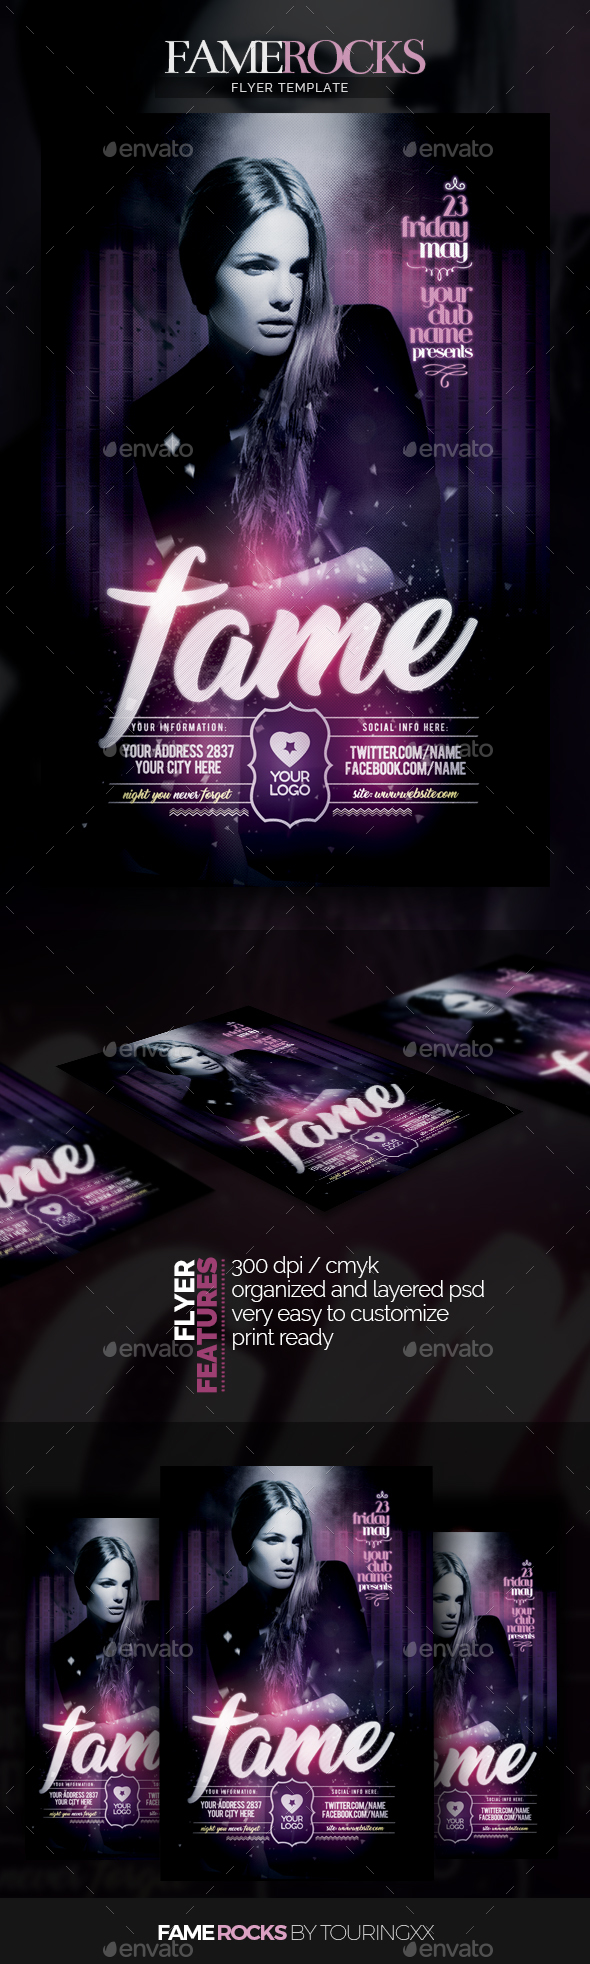 Fame Rocks Flyer Template - Flyers Print Templates